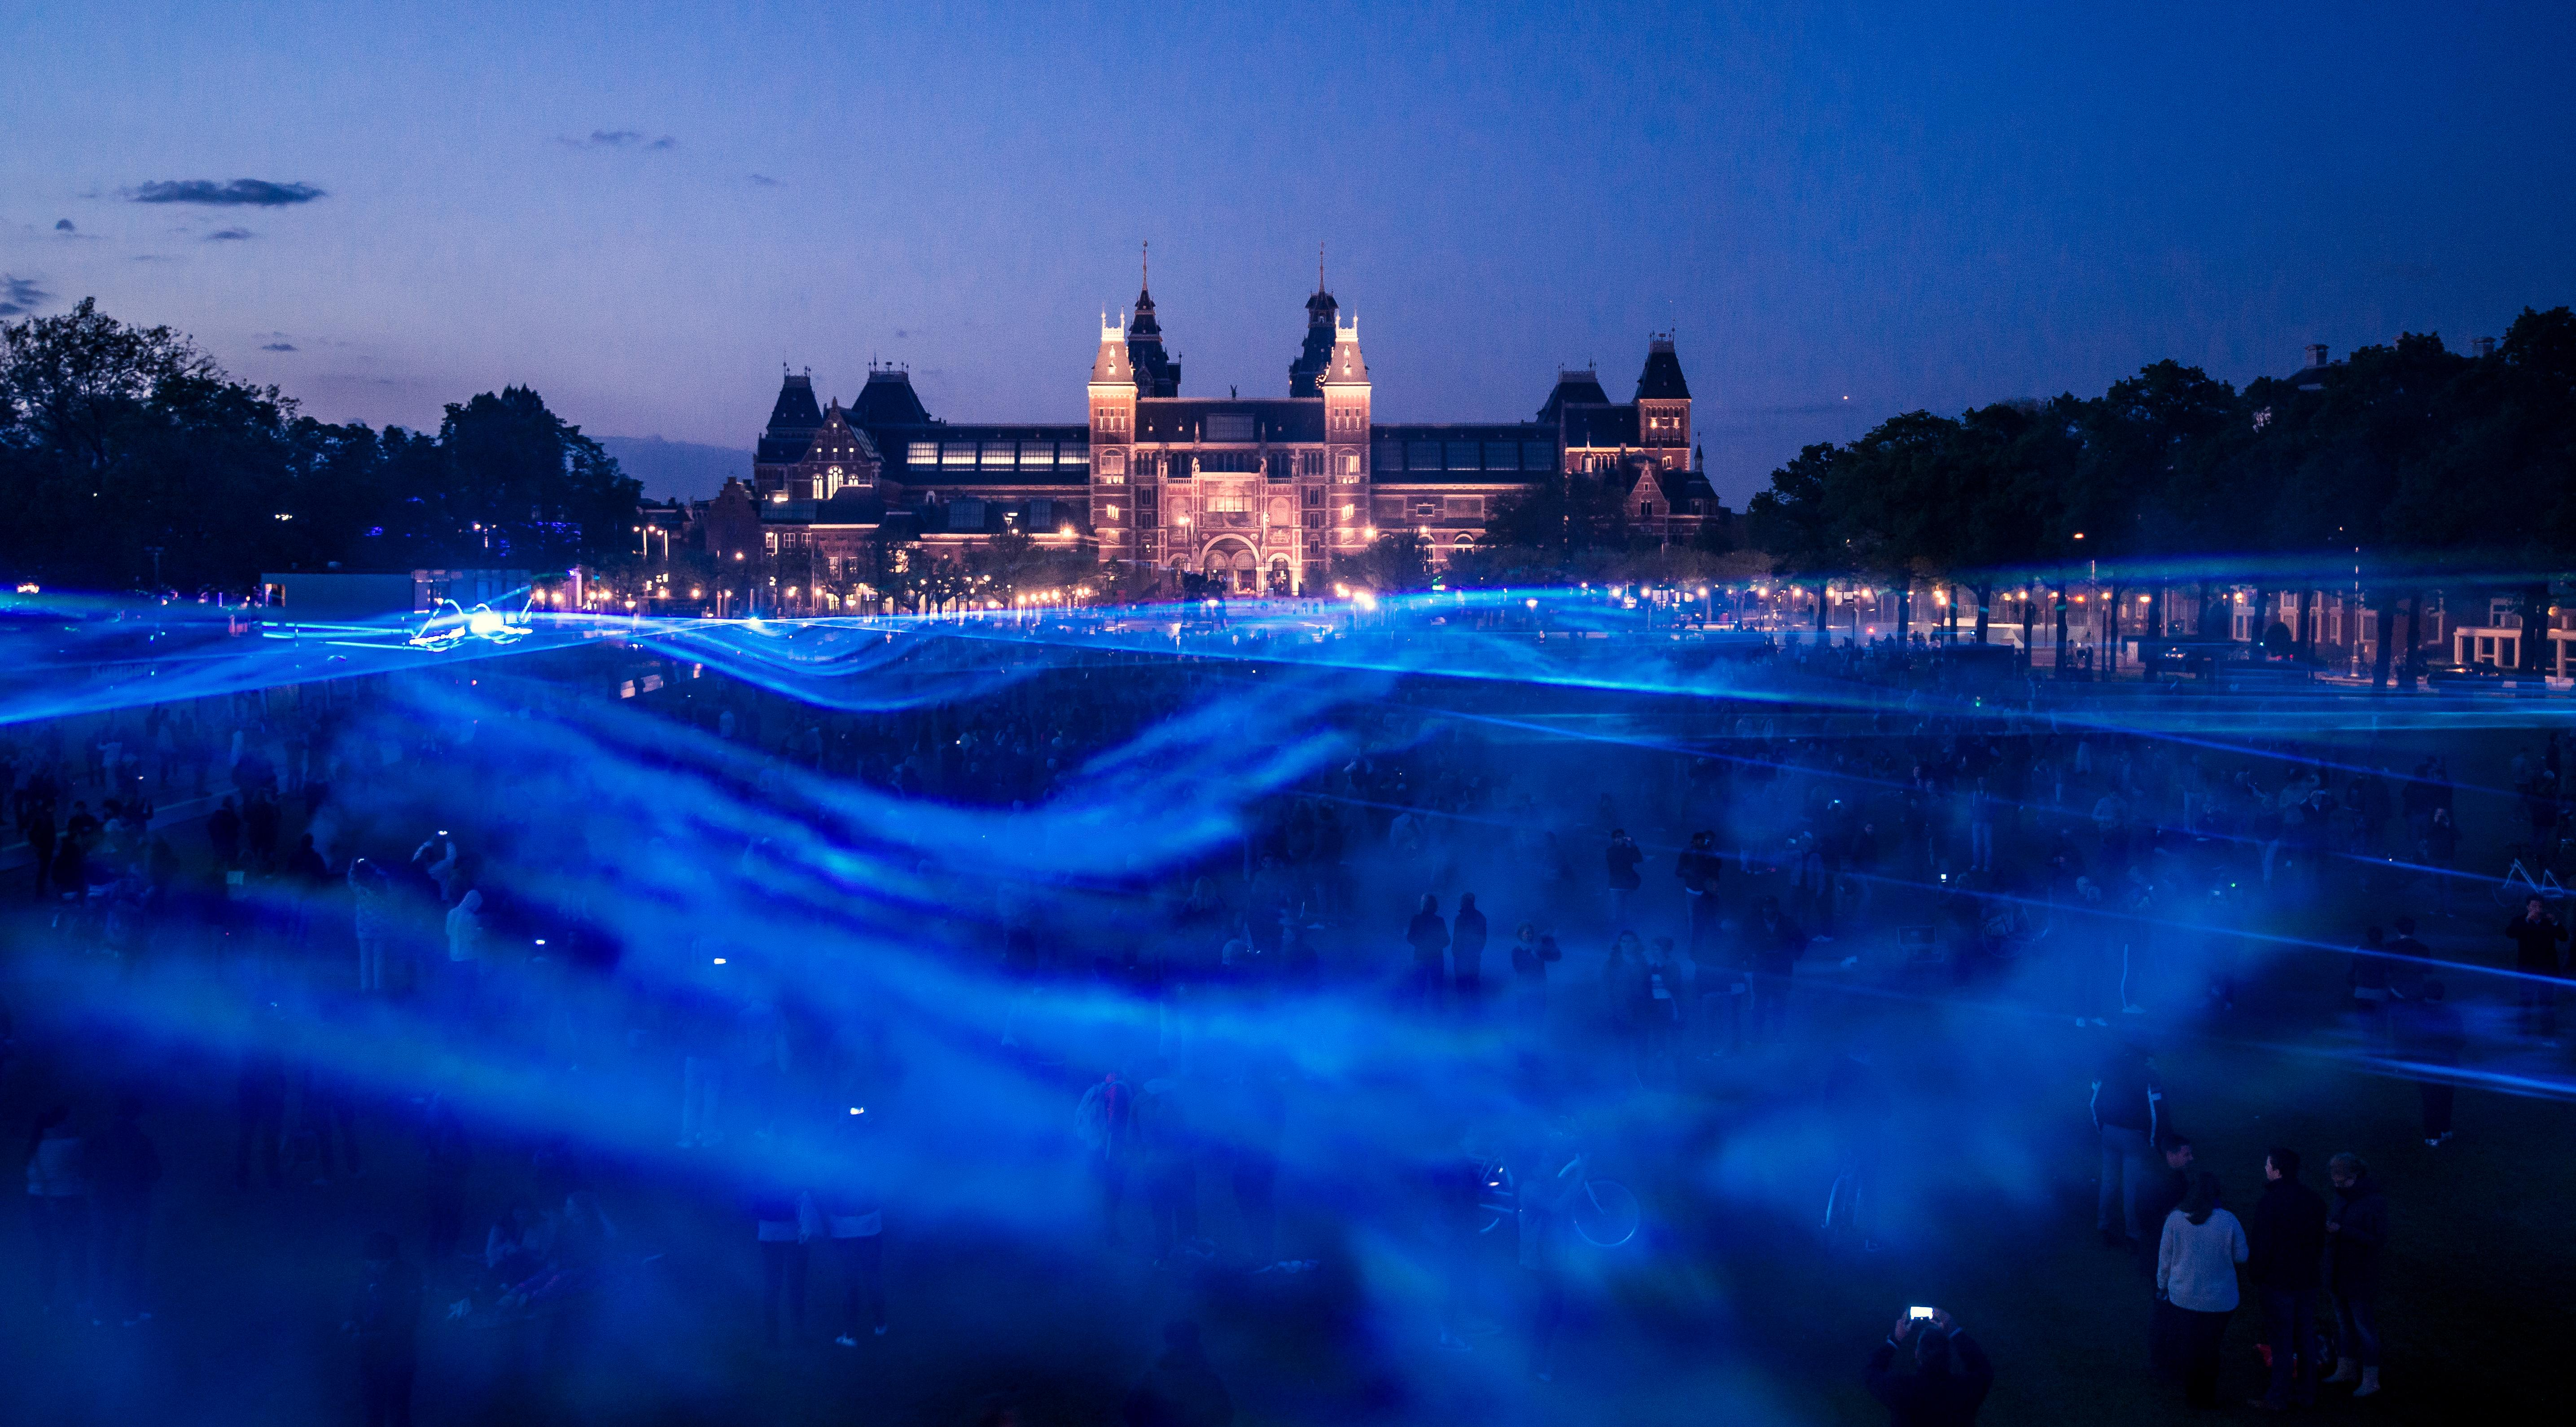 Waterlicht, 2015–present, LEDs, software, lenses, humidity, installation view at Museumplein, Amsterdam, 2015. Artwork © Daan Roosegaarde